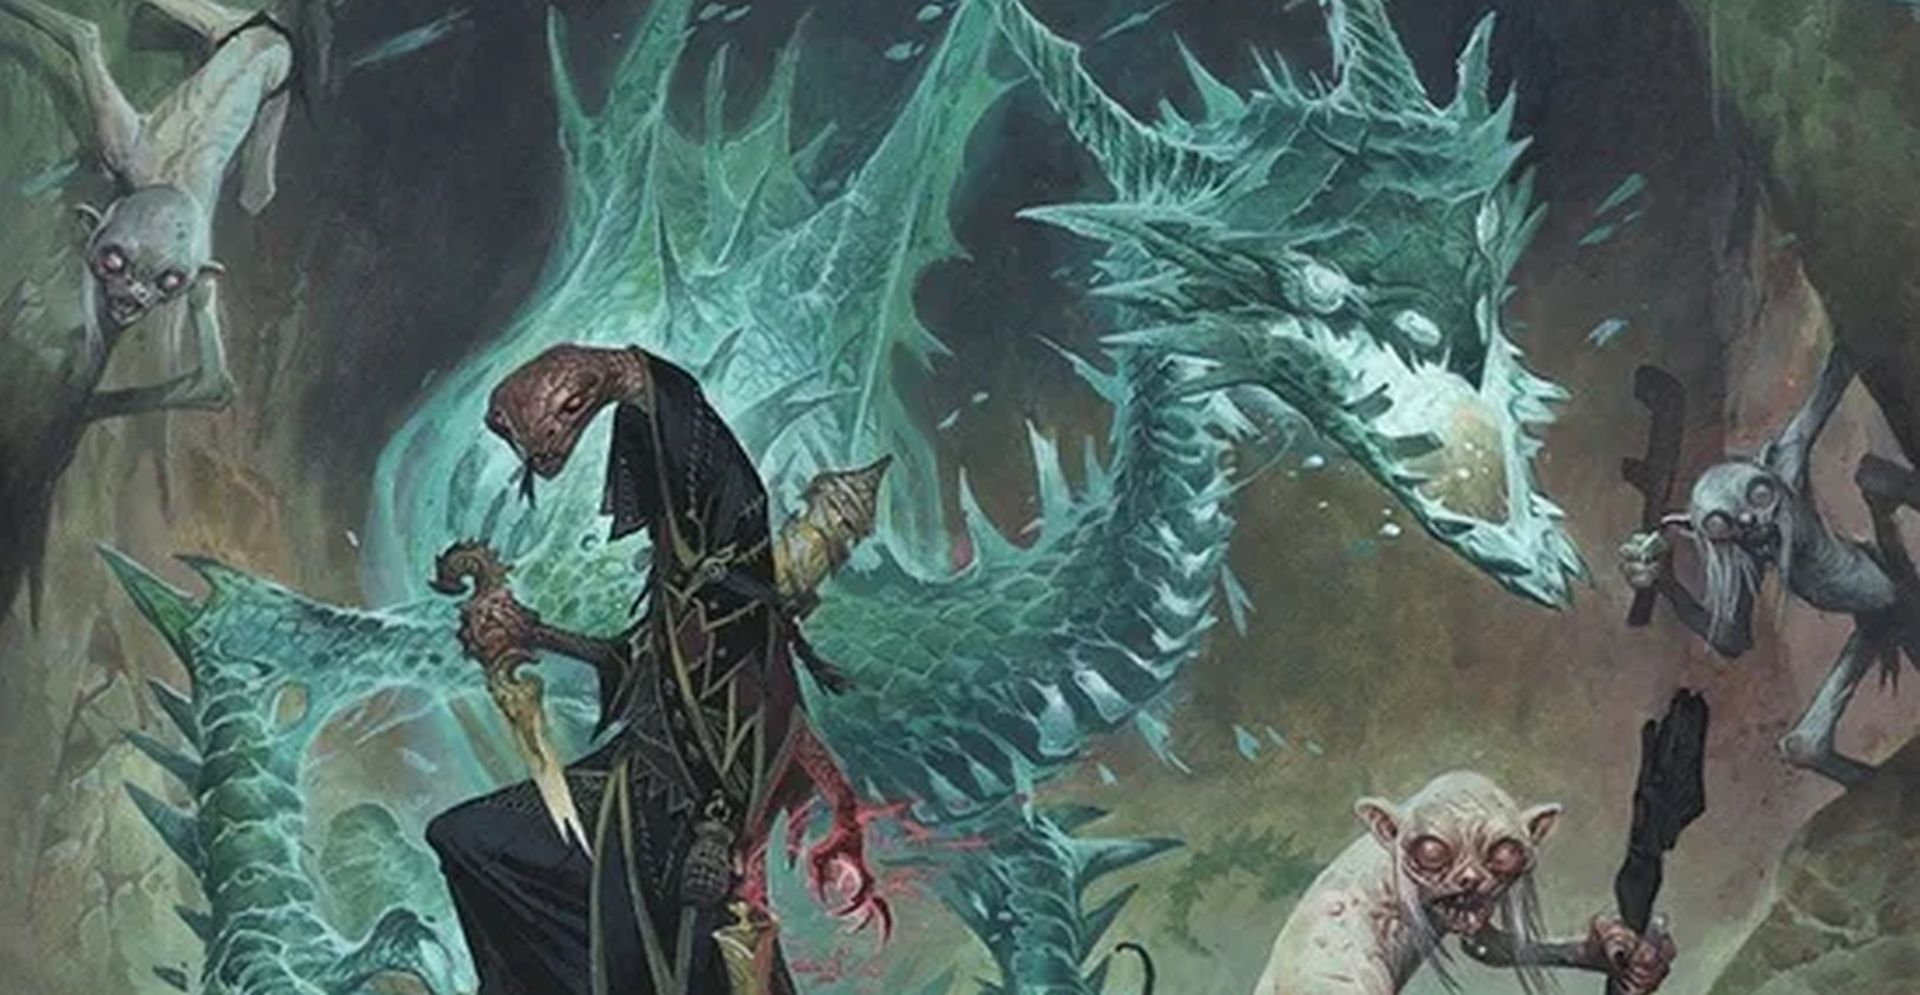 PATHFINDER BESTIARY 2 for PATHFINDER 2E is Set to Launch in